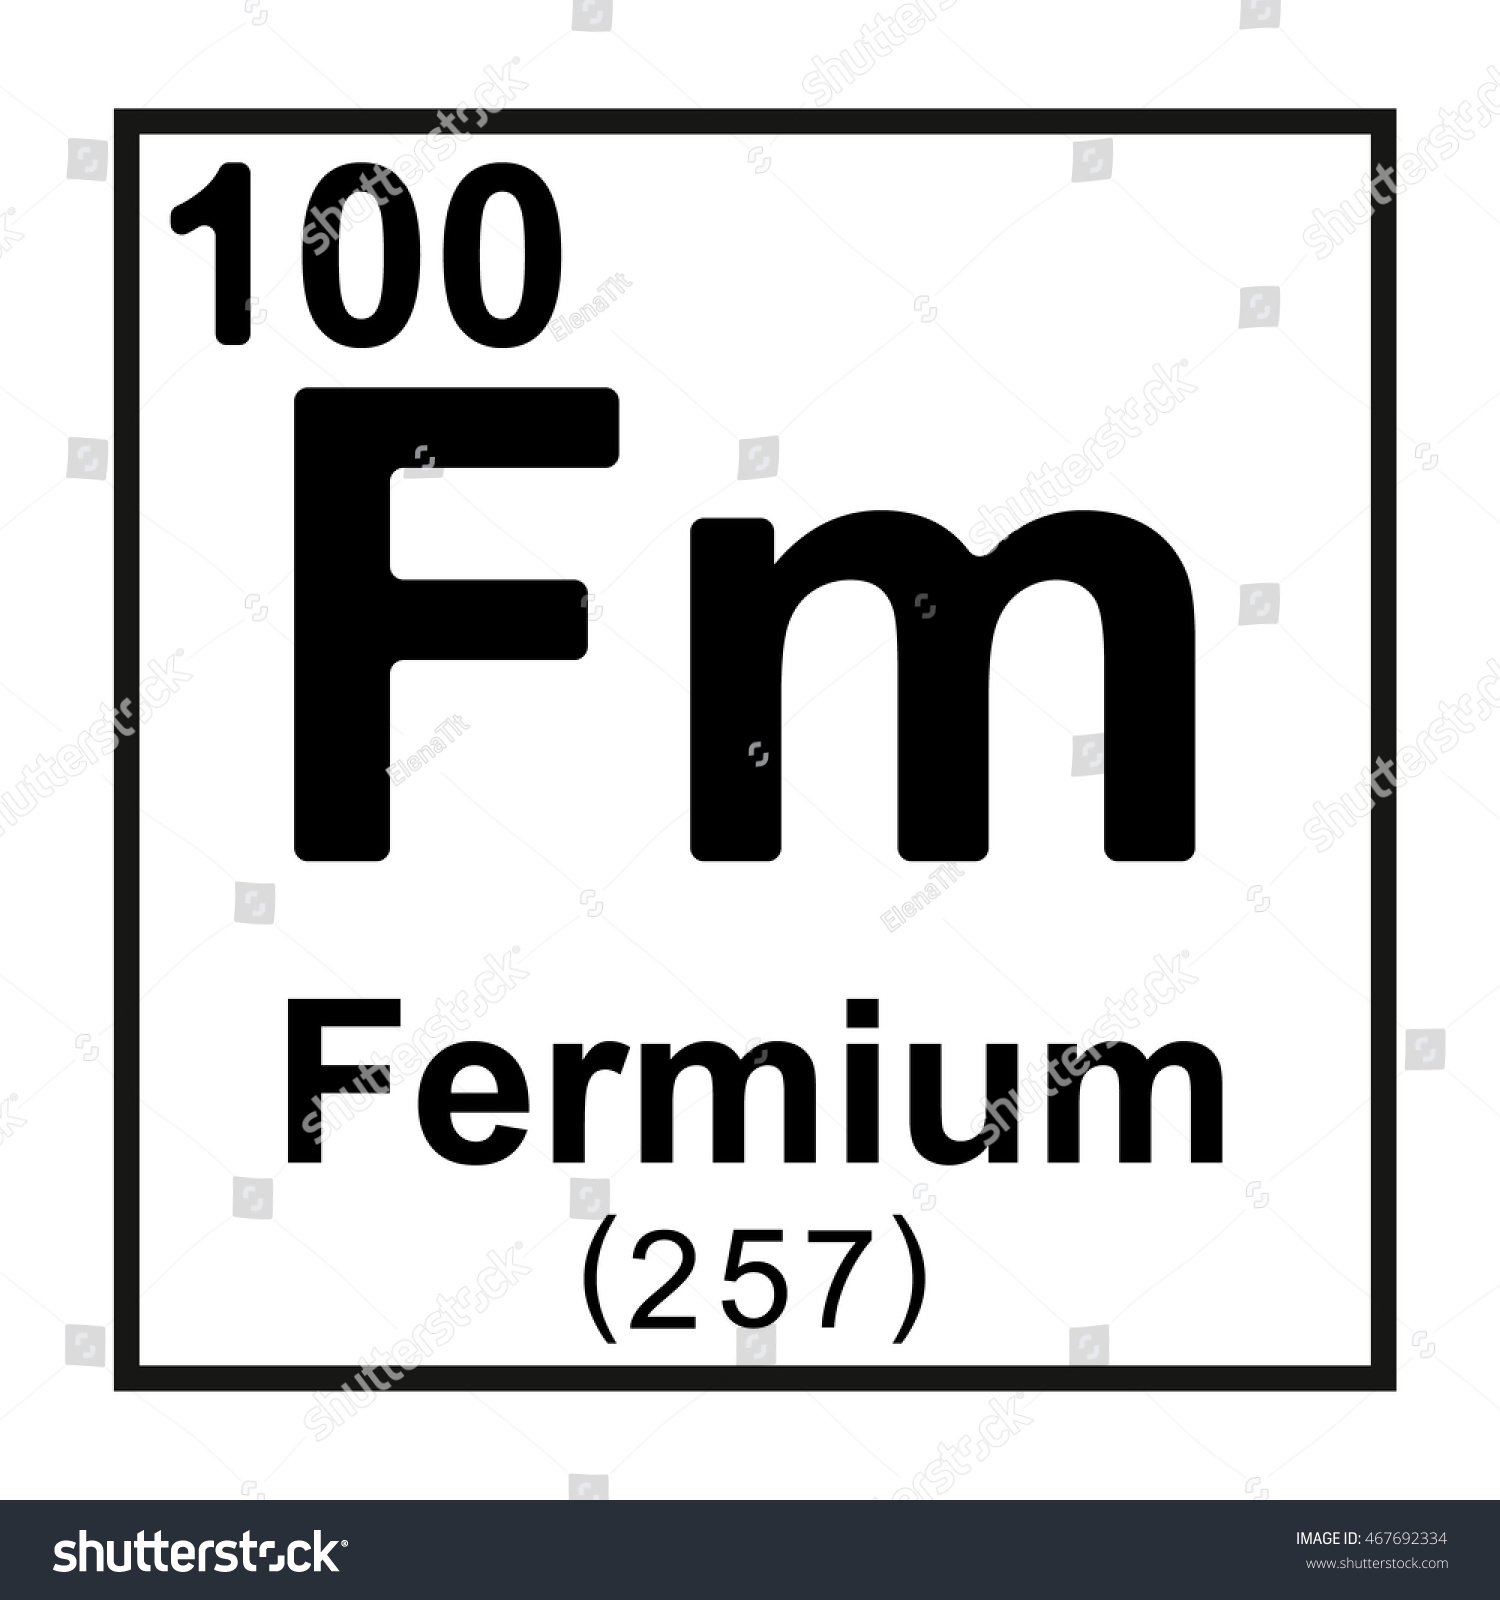 Periodic table element fermium stock vector 467692334 shutterstock periodic table element fermium gamestrikefo Gallery